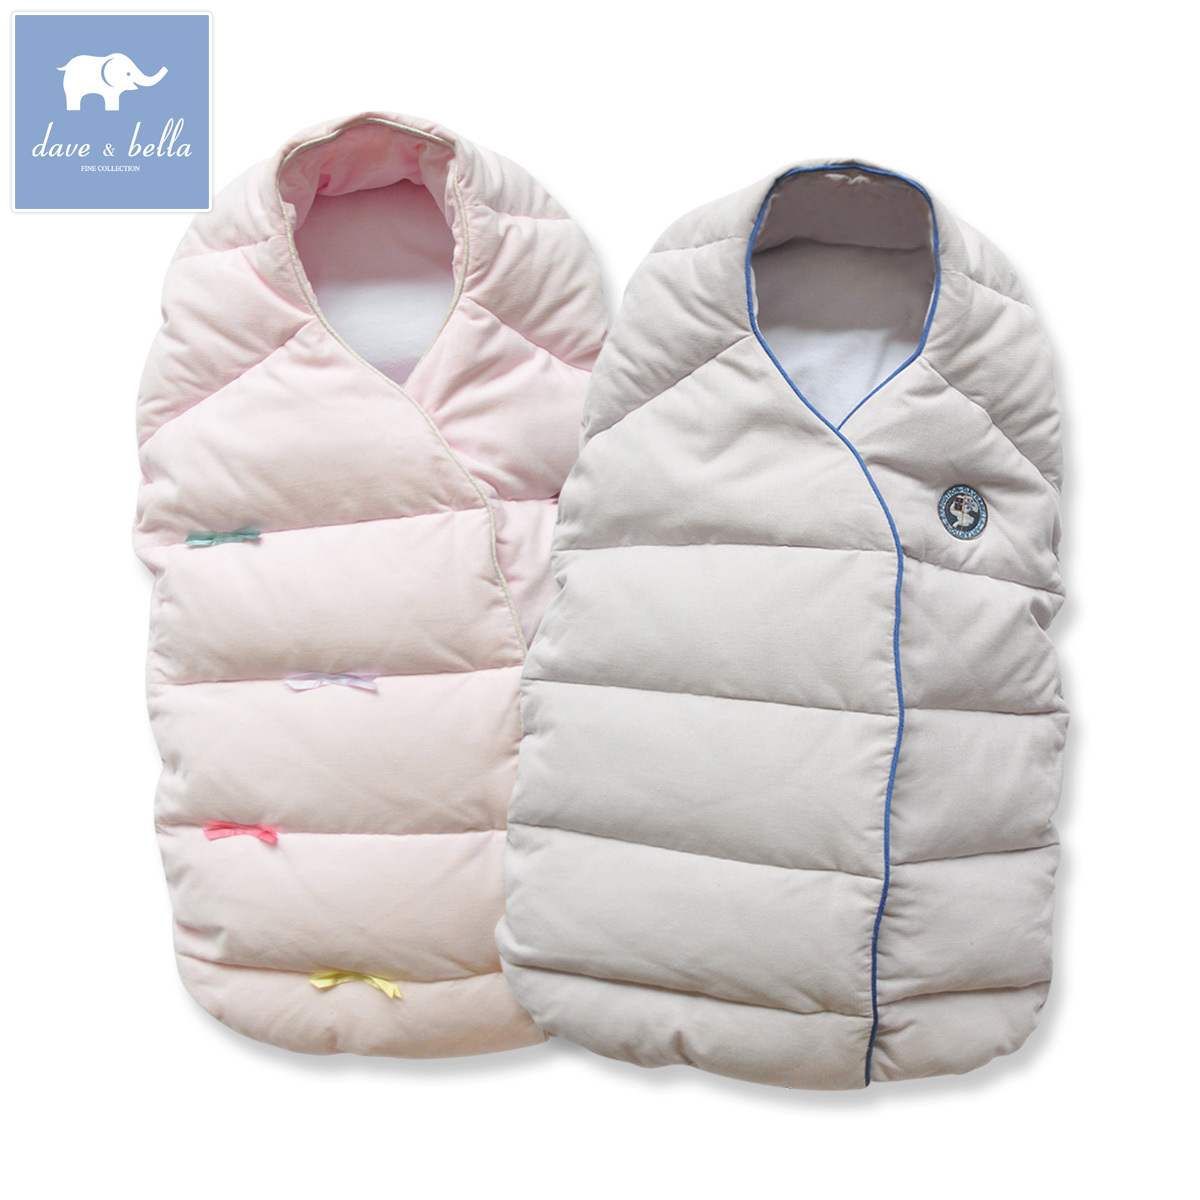 Shop the best selection of infant snowsuits and buntings at shopnow-vjpmehag.cf, where you'll find premium outdoor gear and clothing and experts to guide you through selection.